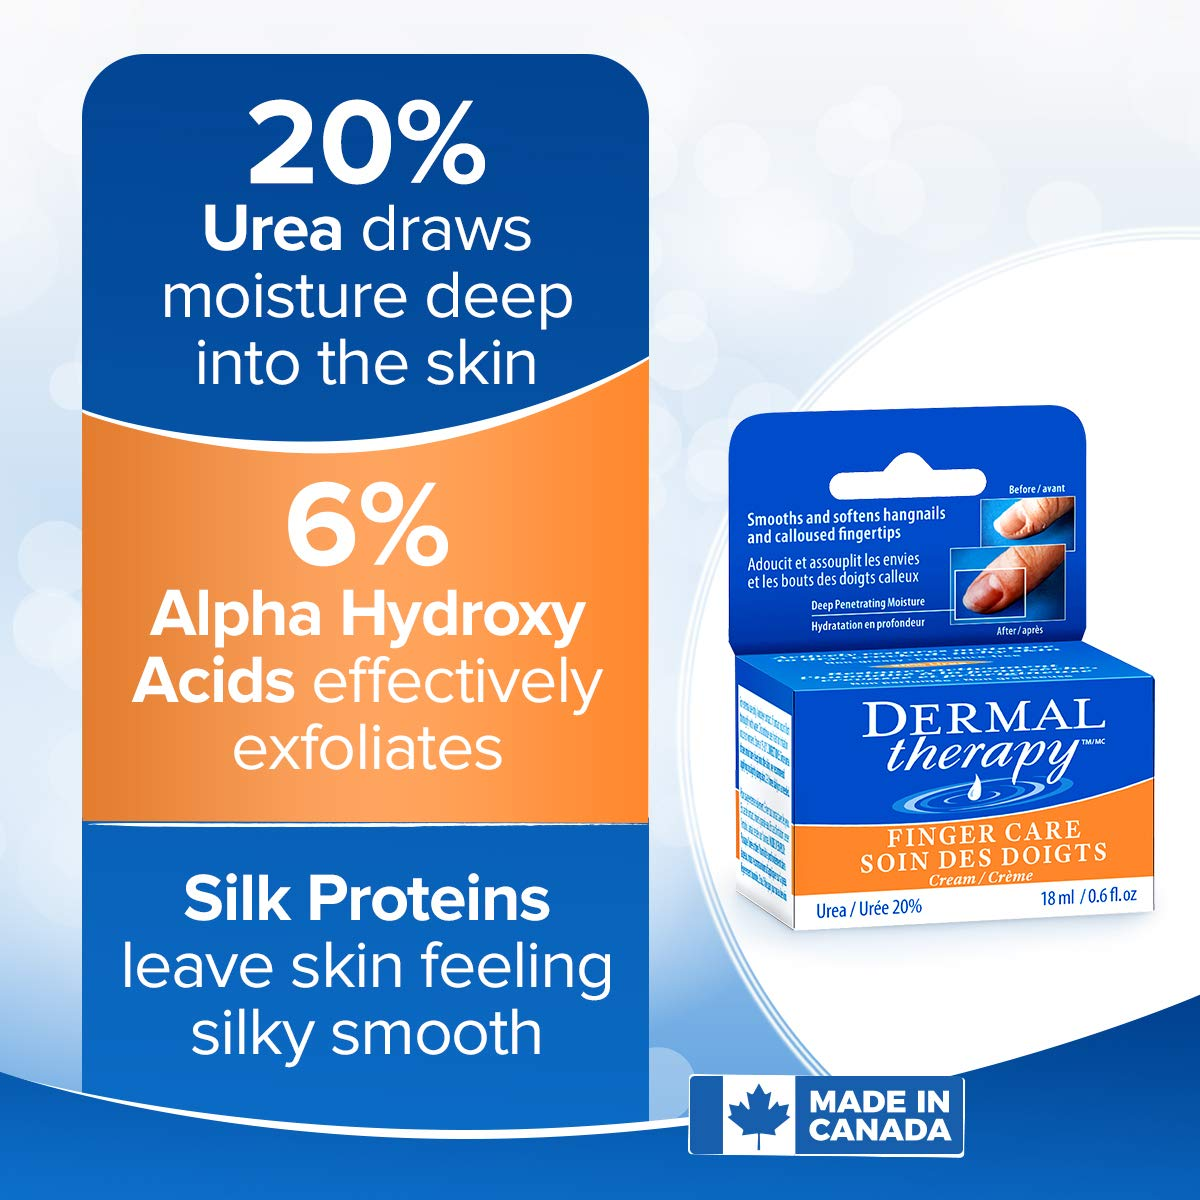 Dermal Therapy Finger Care Cream – Hydrating Treatment Repairs Skin to Heal Dry, Cracked Fingertips Resulting from Frequently Washed/Cleaned Hands   20% Urea and 6% Alpha Hydroxy Acids   0.6 fl. oz : Beauty